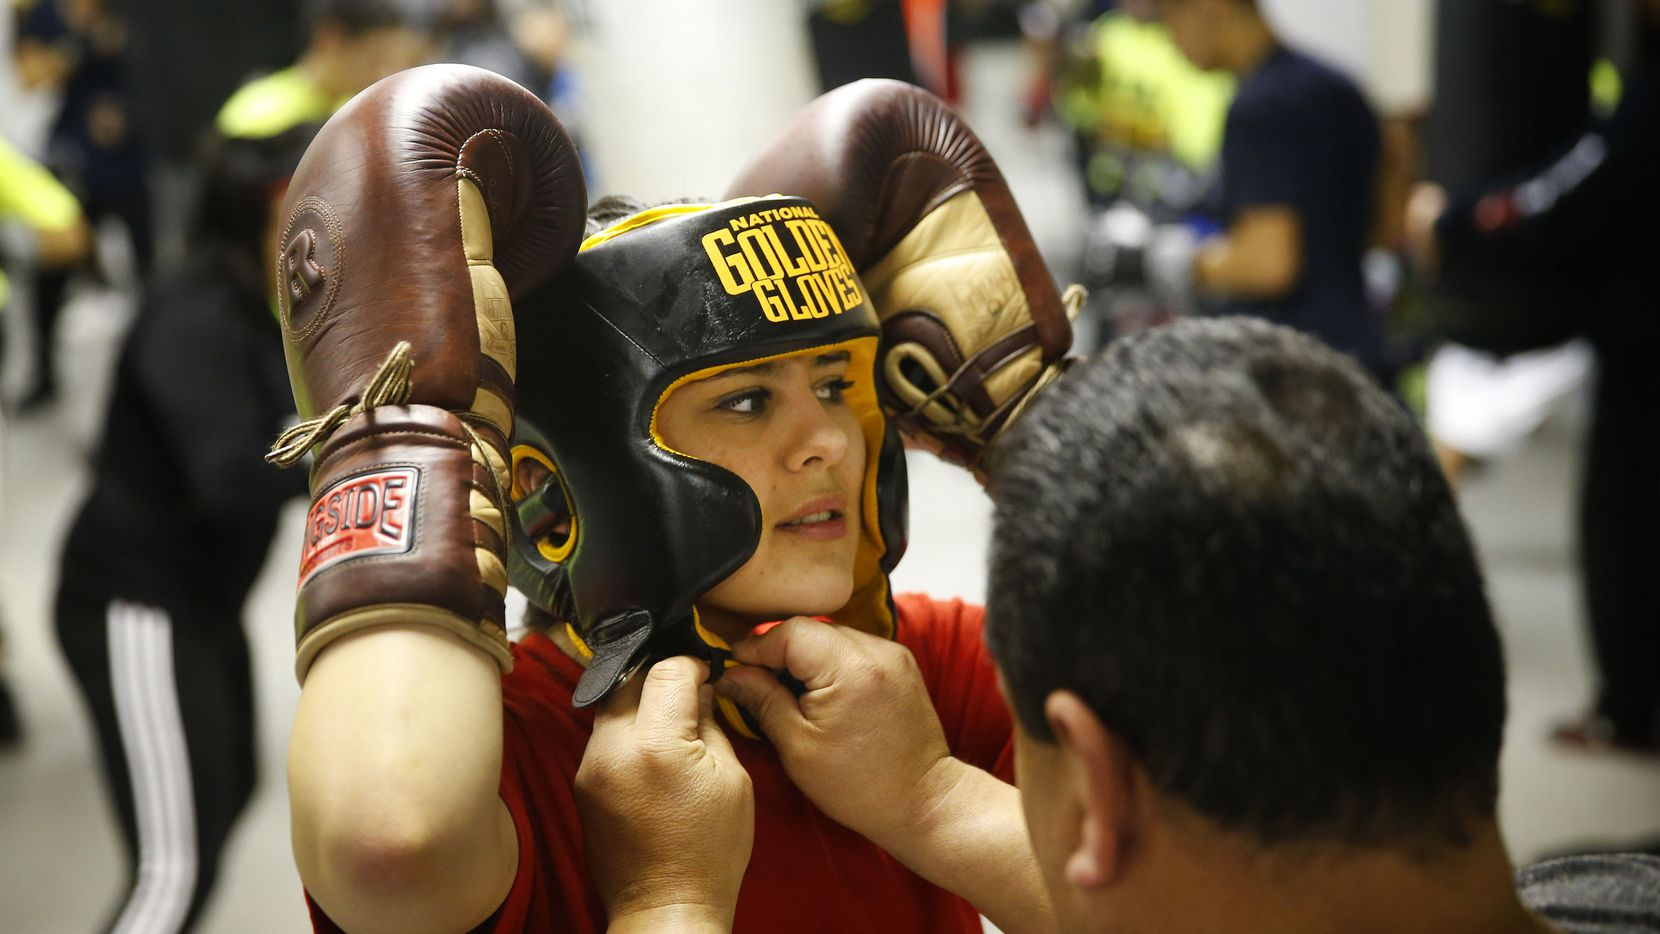 Alexis Texas Boxing once bullied, annalicia sustaita of garland now packs a